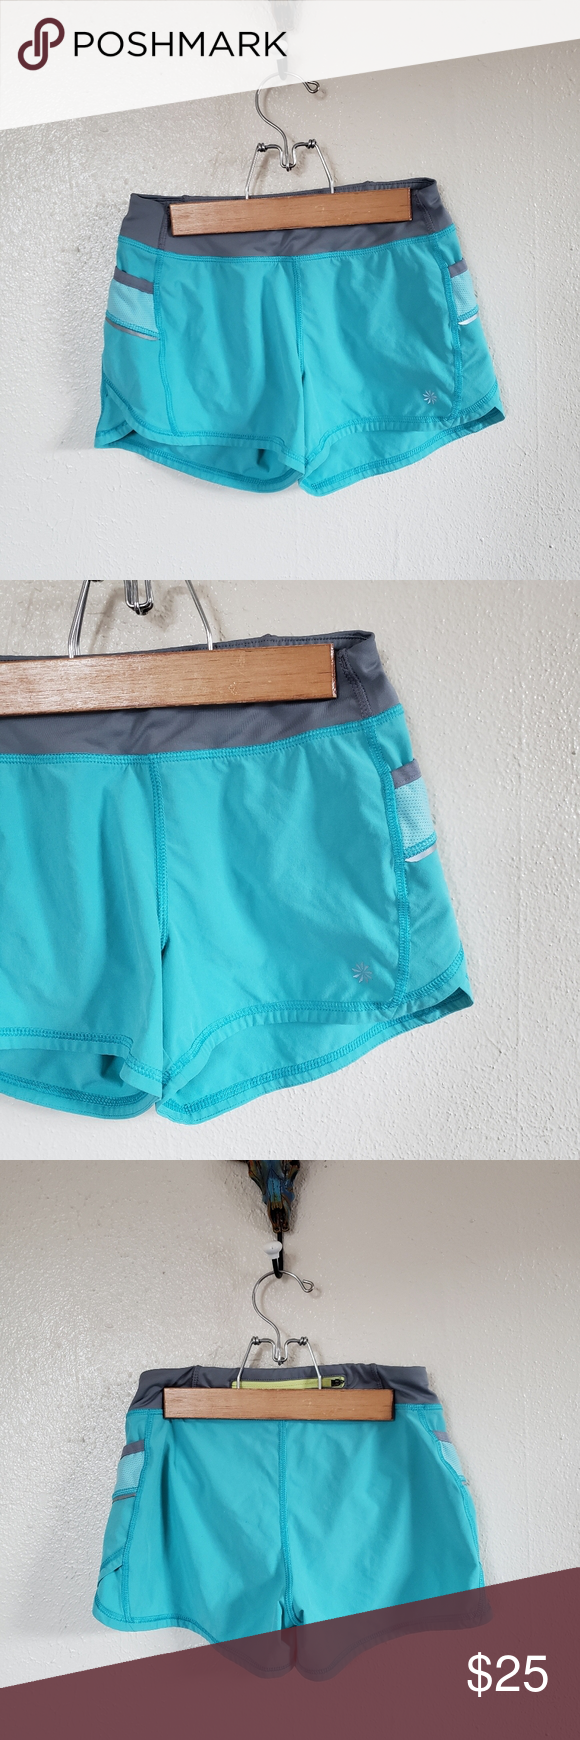 Athleta Girl Light Blue & Grey Shorts In great condition No rips or stains Has liner inside Athleta Bottoms Shorts #lightblueshorts Athleta Girl Light Blue & Grey Shorts In great condition No rips or stains Has liner inside Athleta Bottoms Shorts #lightblueshorts